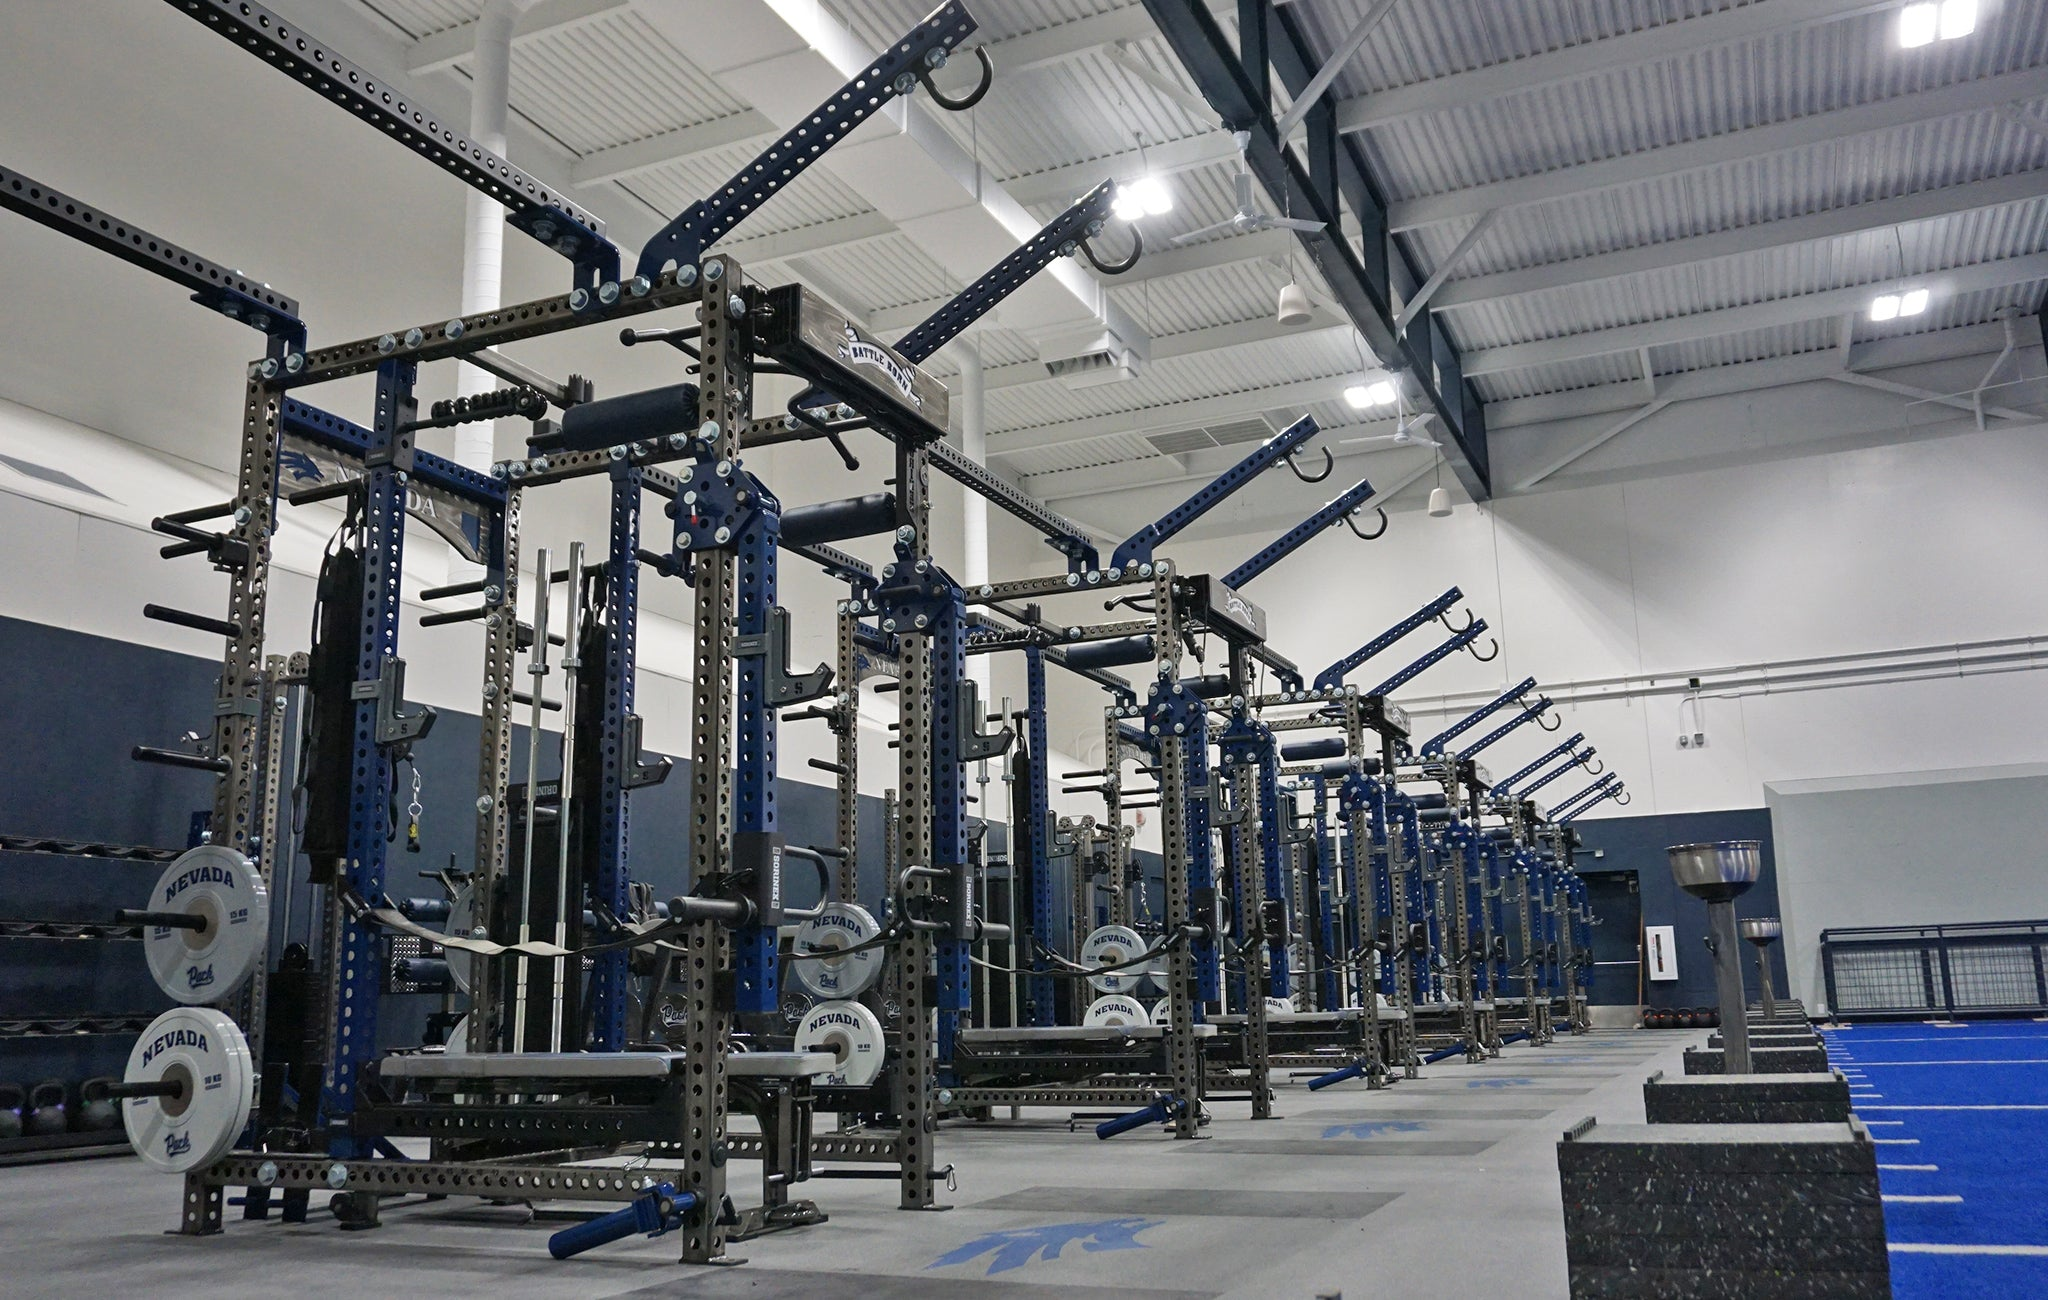 University of Nevada Weight Room